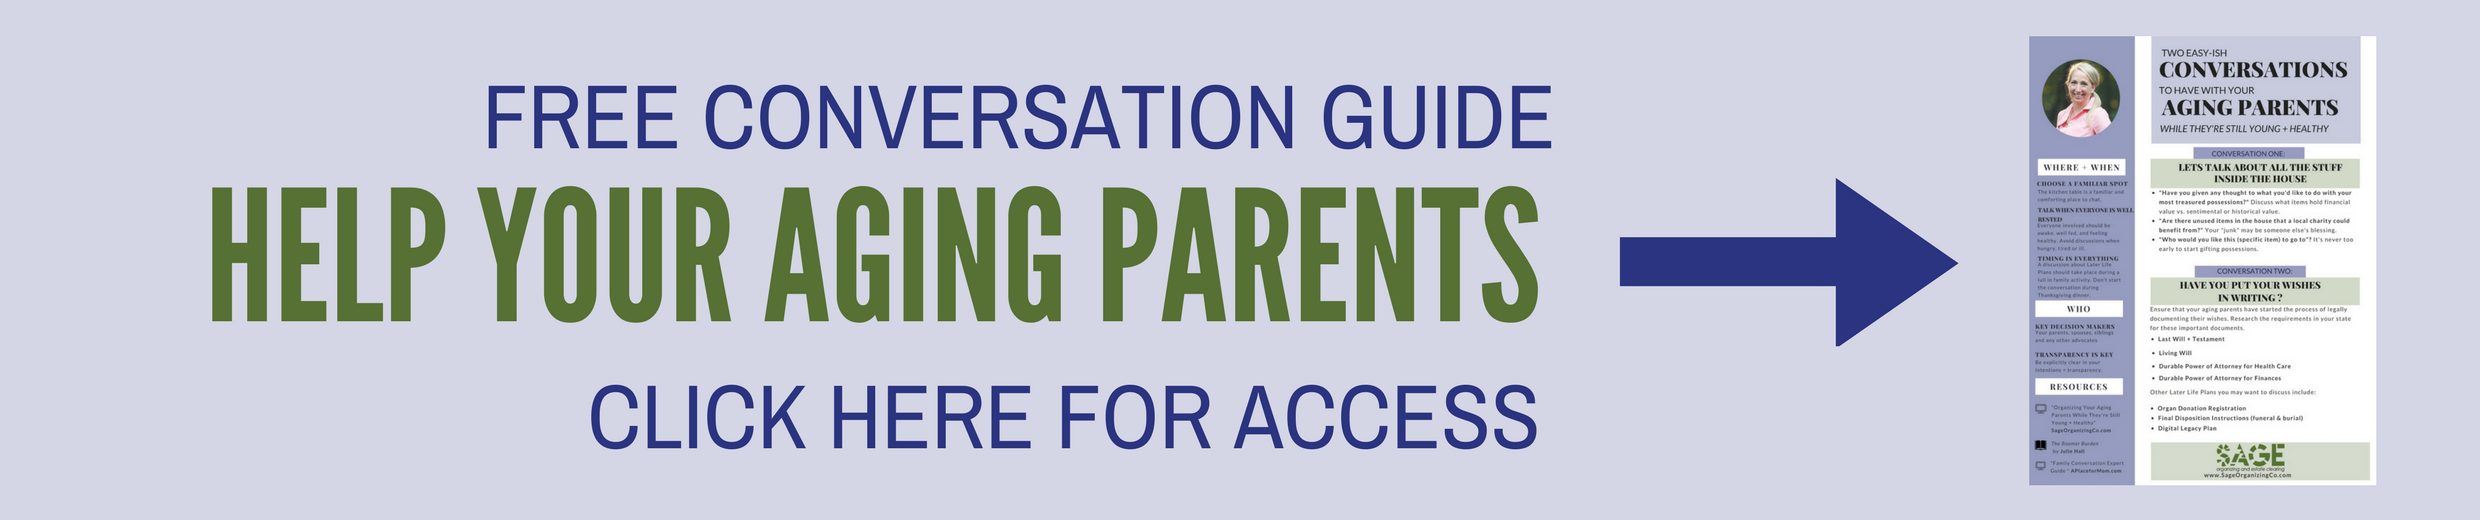 help your aging parents conversation guide from Sage Organizing Co.